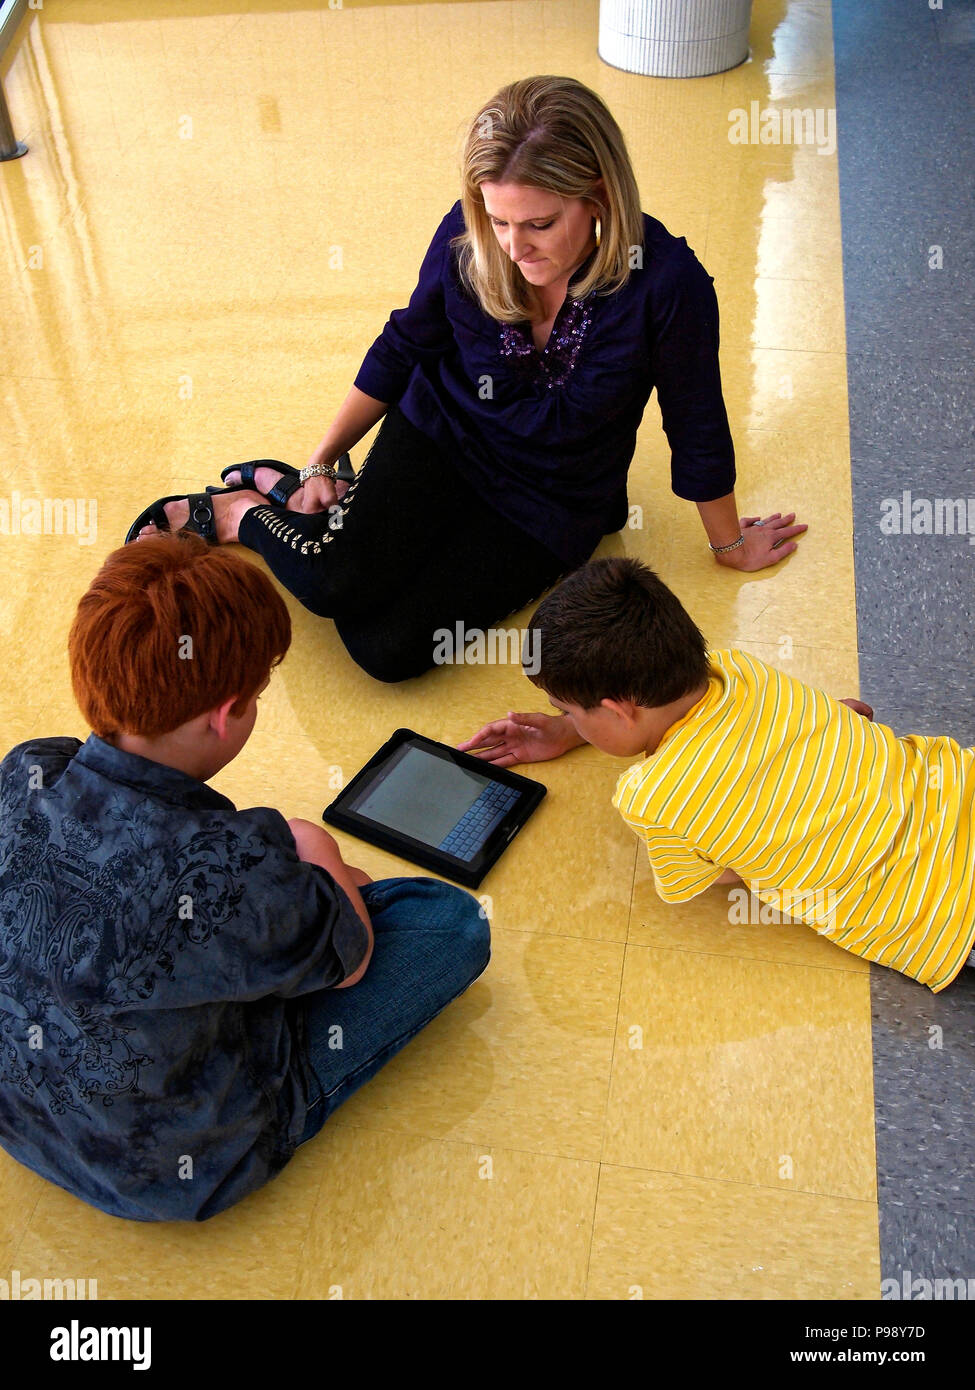 Fifth graders use internet and mobile device like an Apple iPad to research a topic for class. The research then is used for writing a paper on the computer, or making a Powerpoint presentation. Al to get a good grade in school - Stock Image